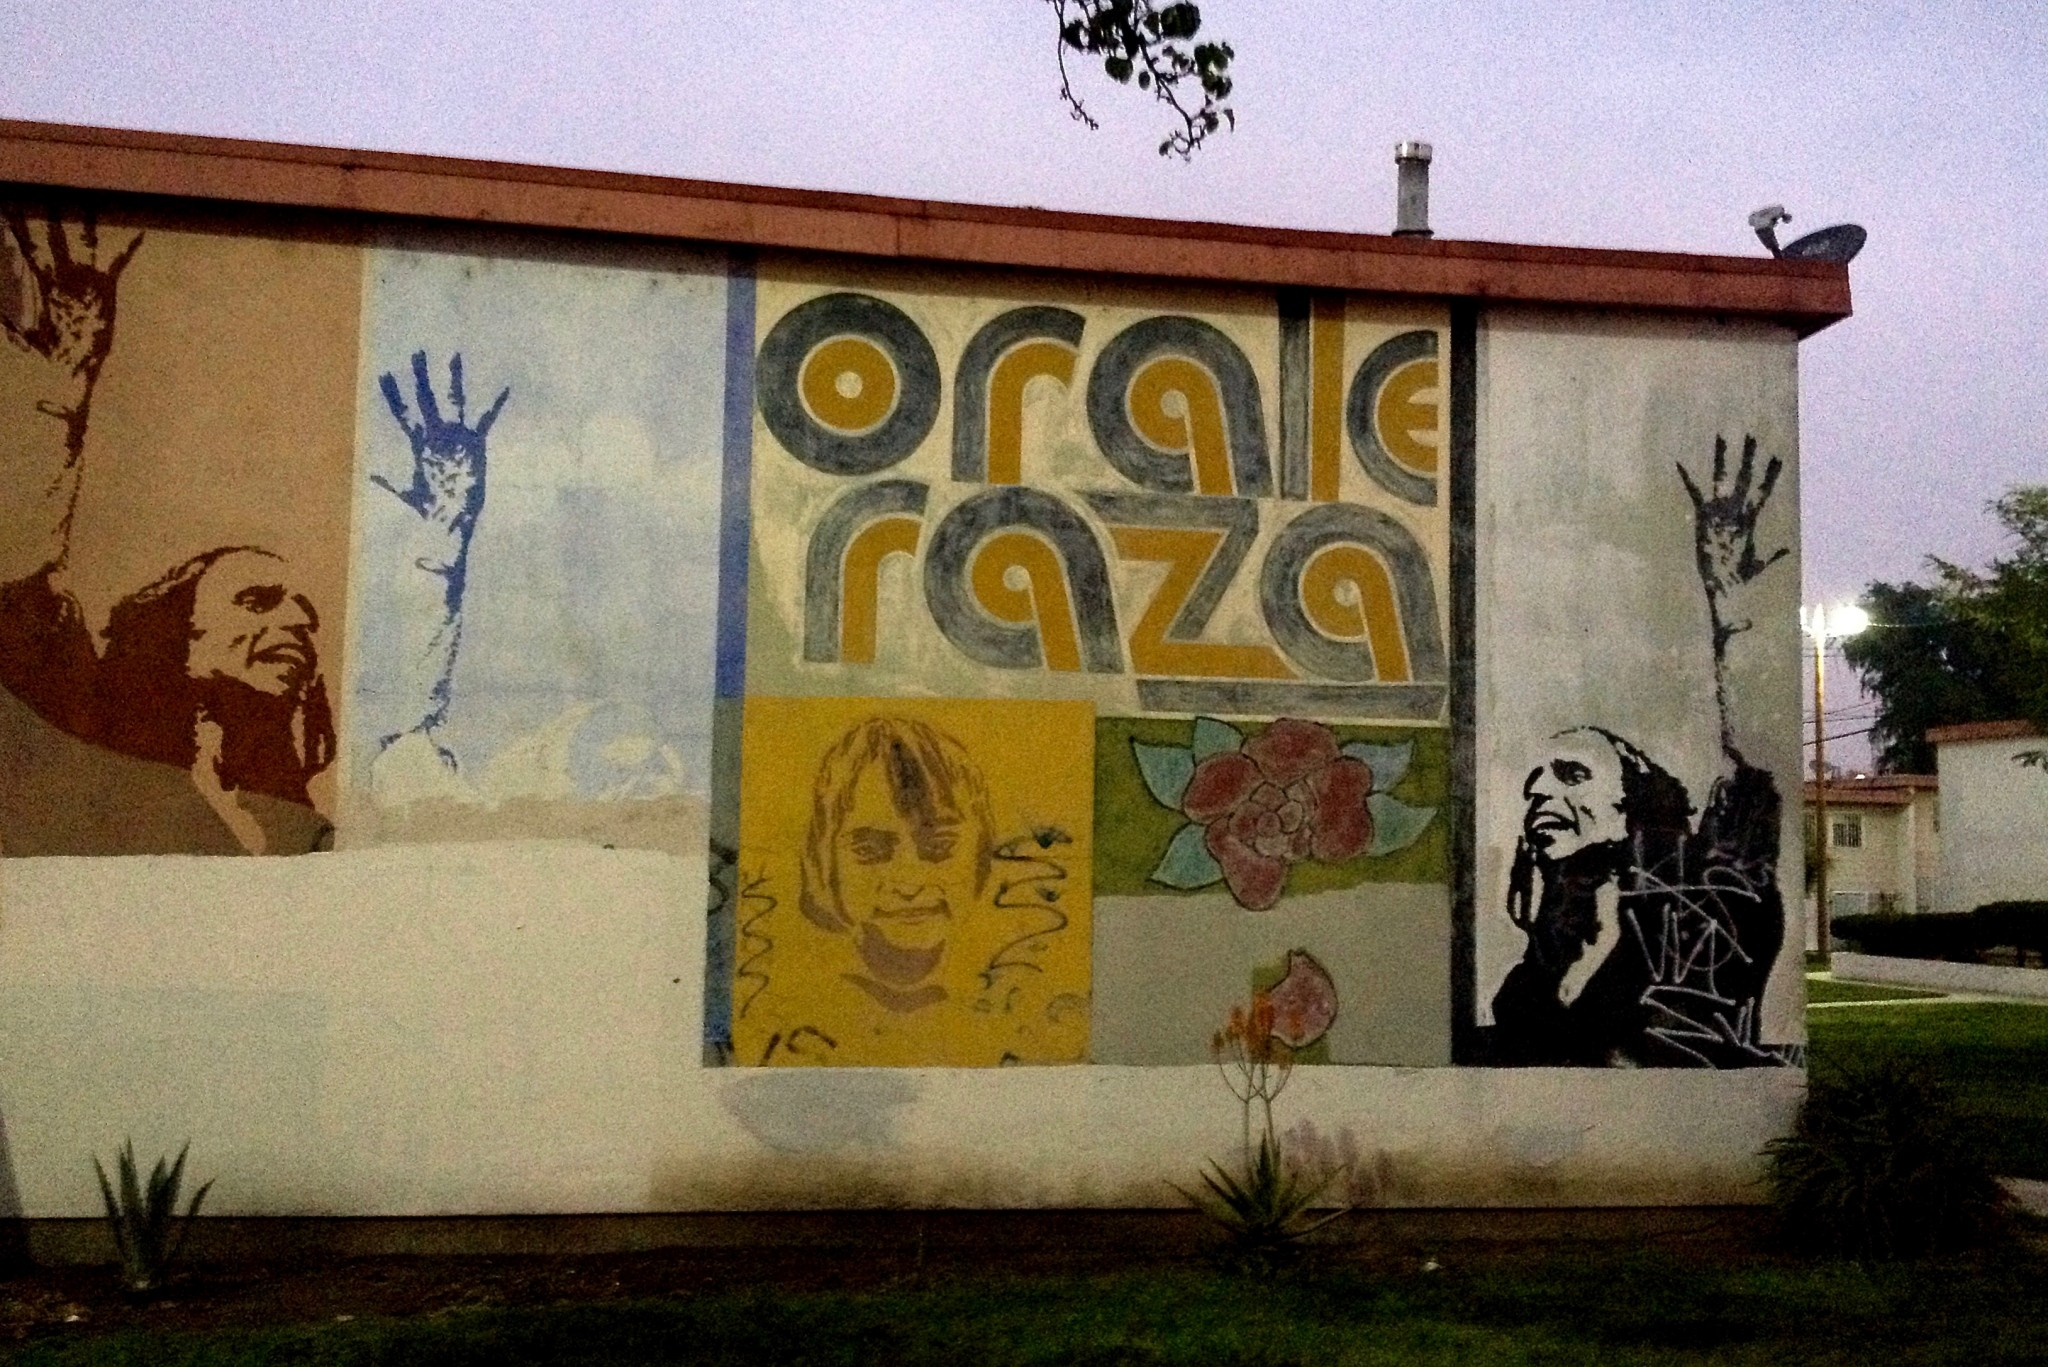 We paused to check out the Estrada Courts Orale Raza mural